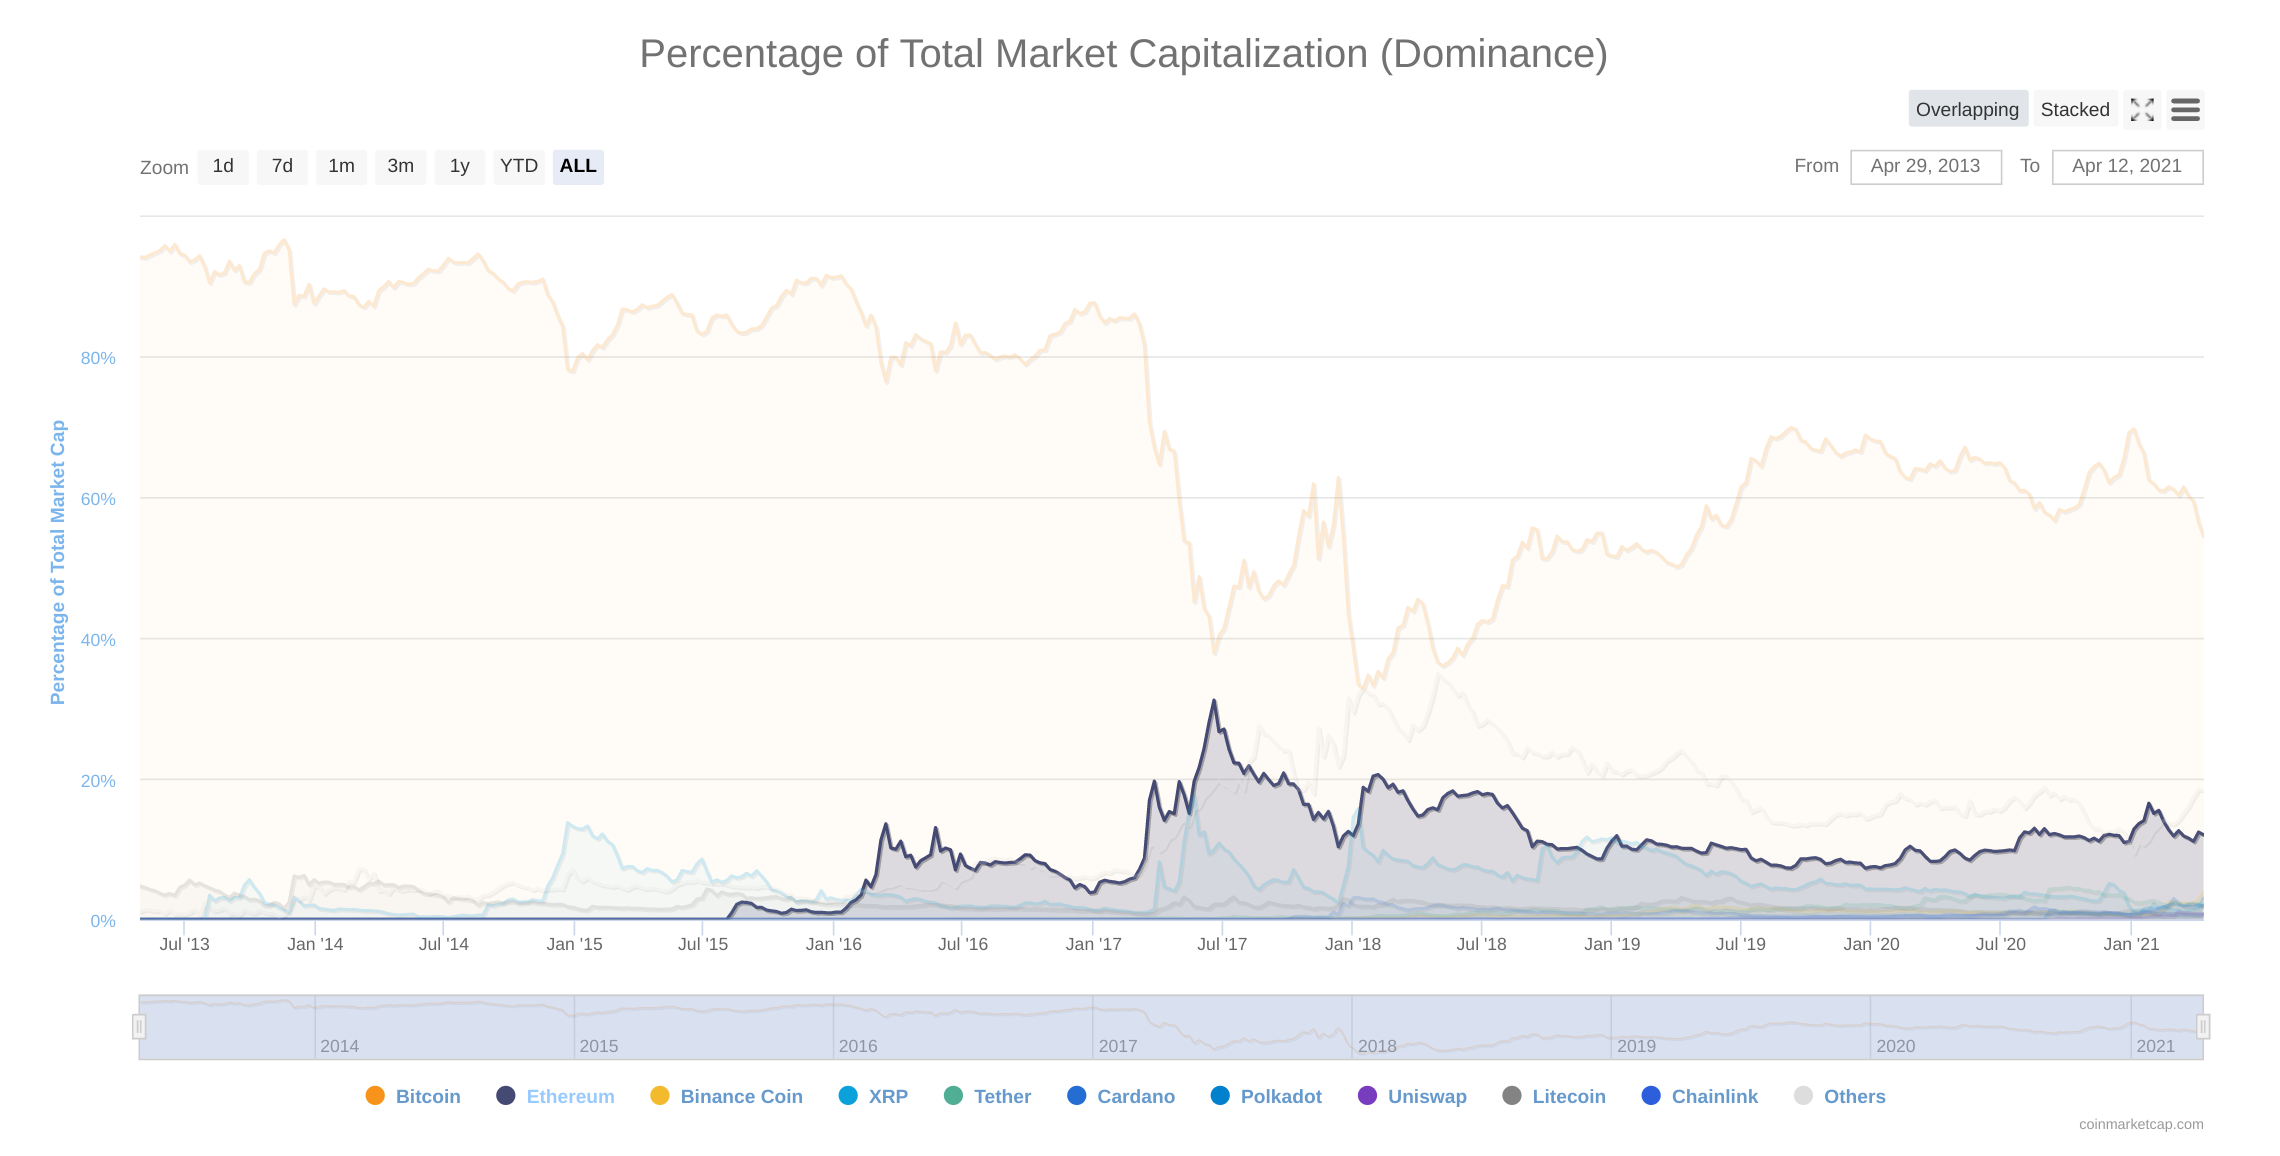 Top 10 cryptocurrencies by market dominance